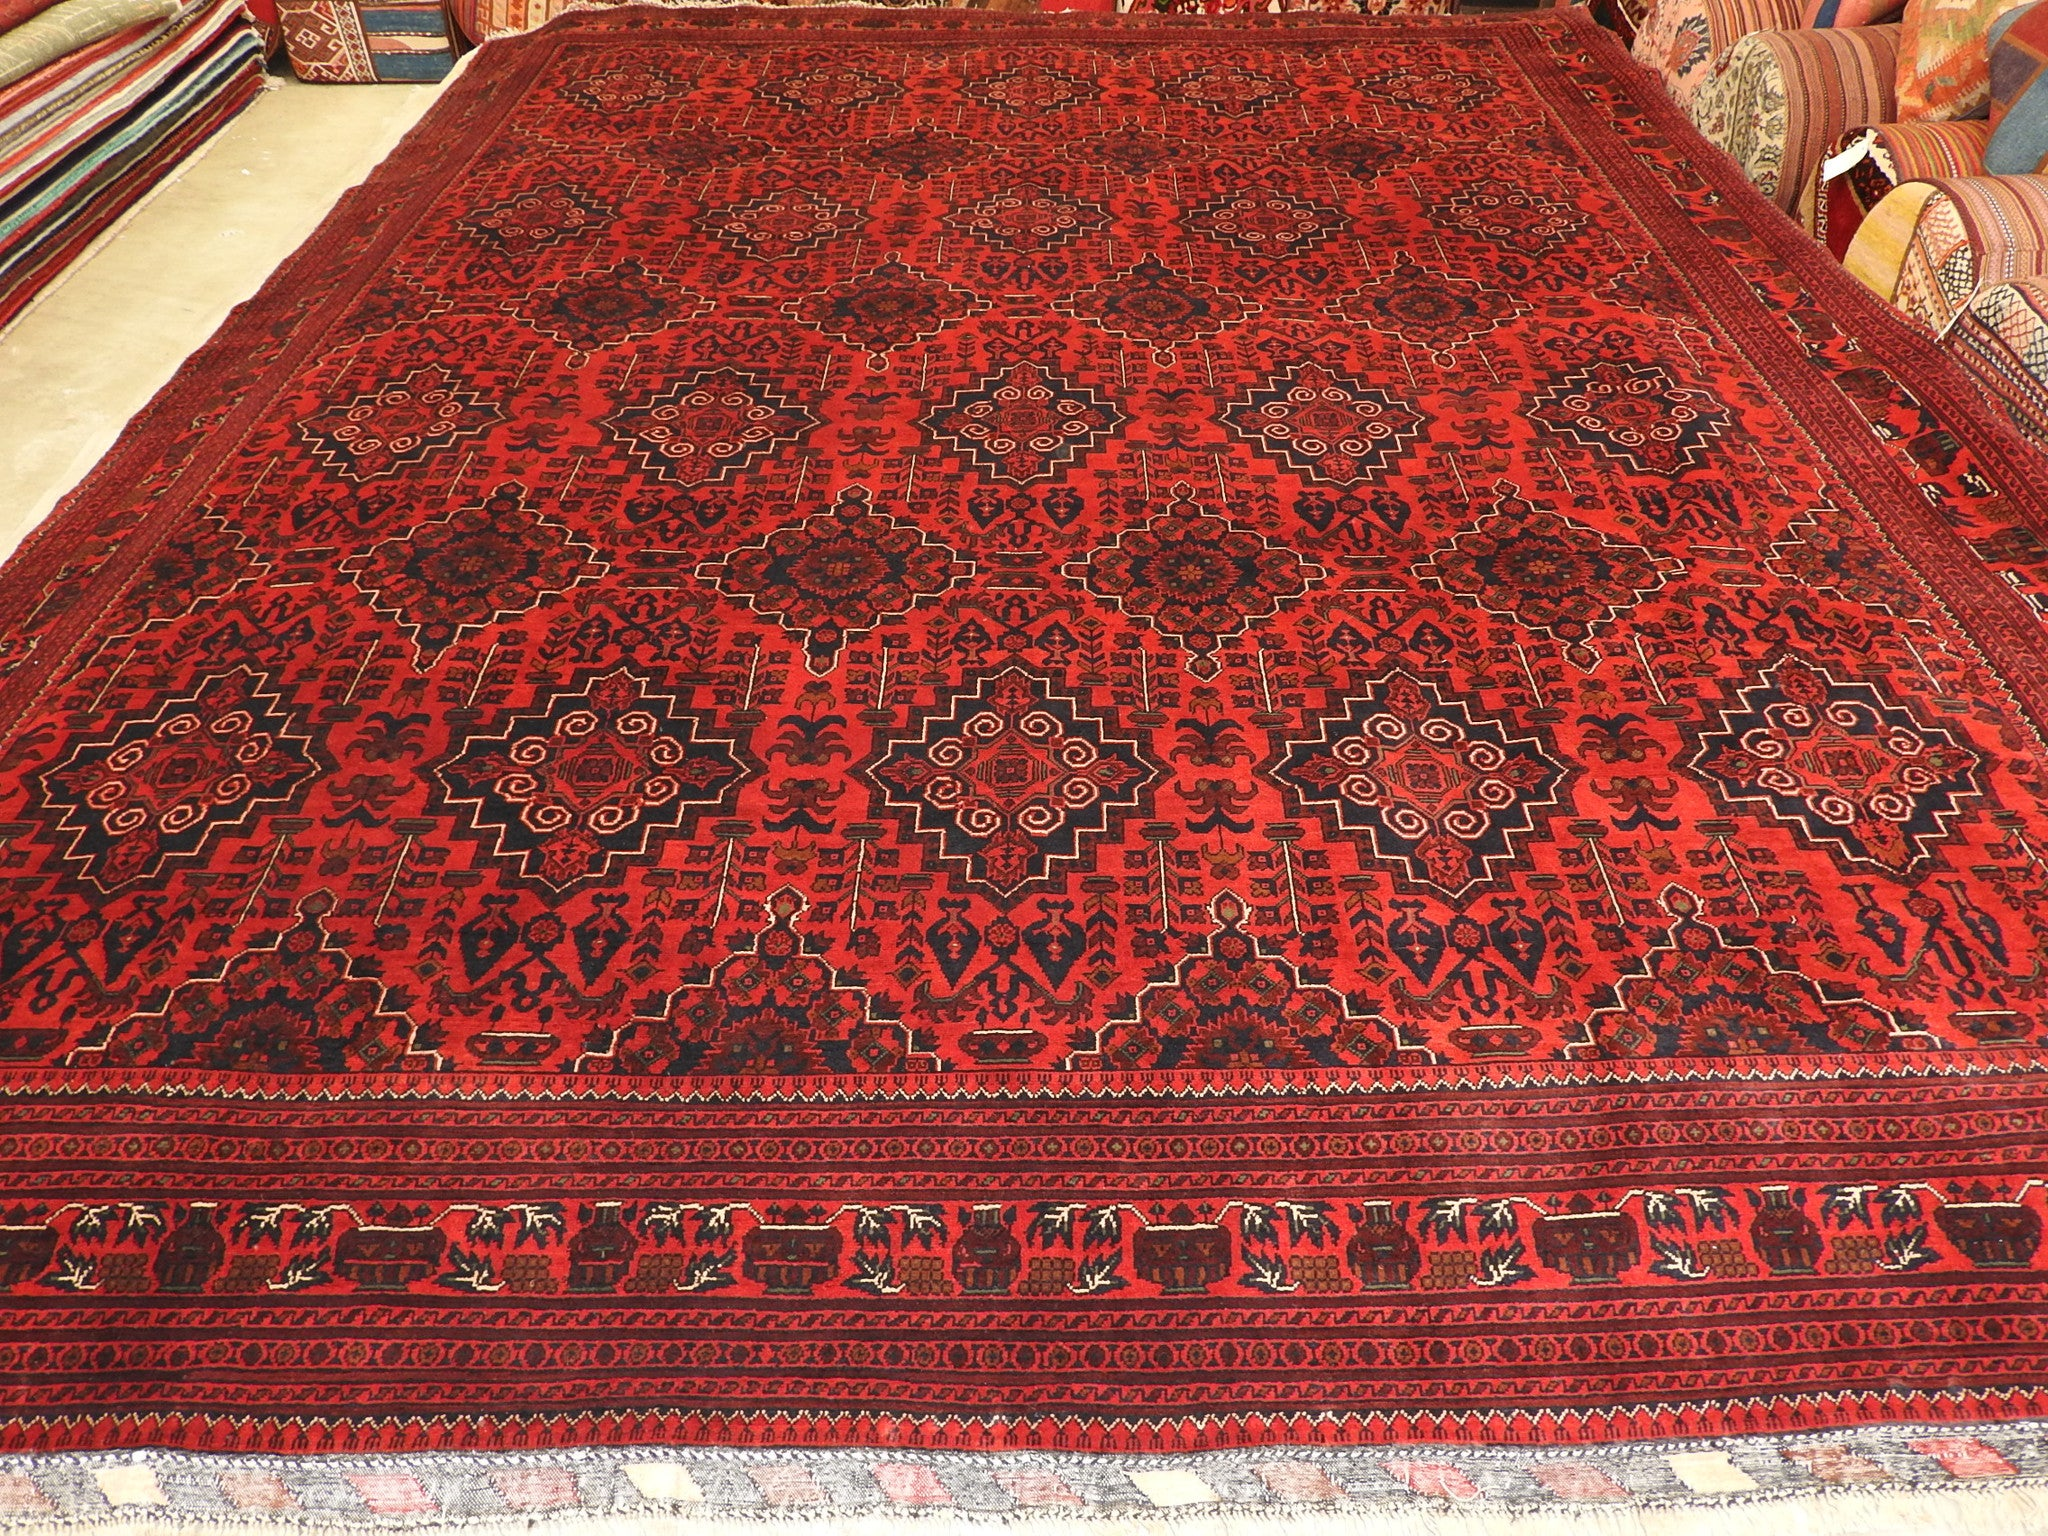 Afghan Hand Knotted Khal Mohammadi Rug Size: 298 x 390cm